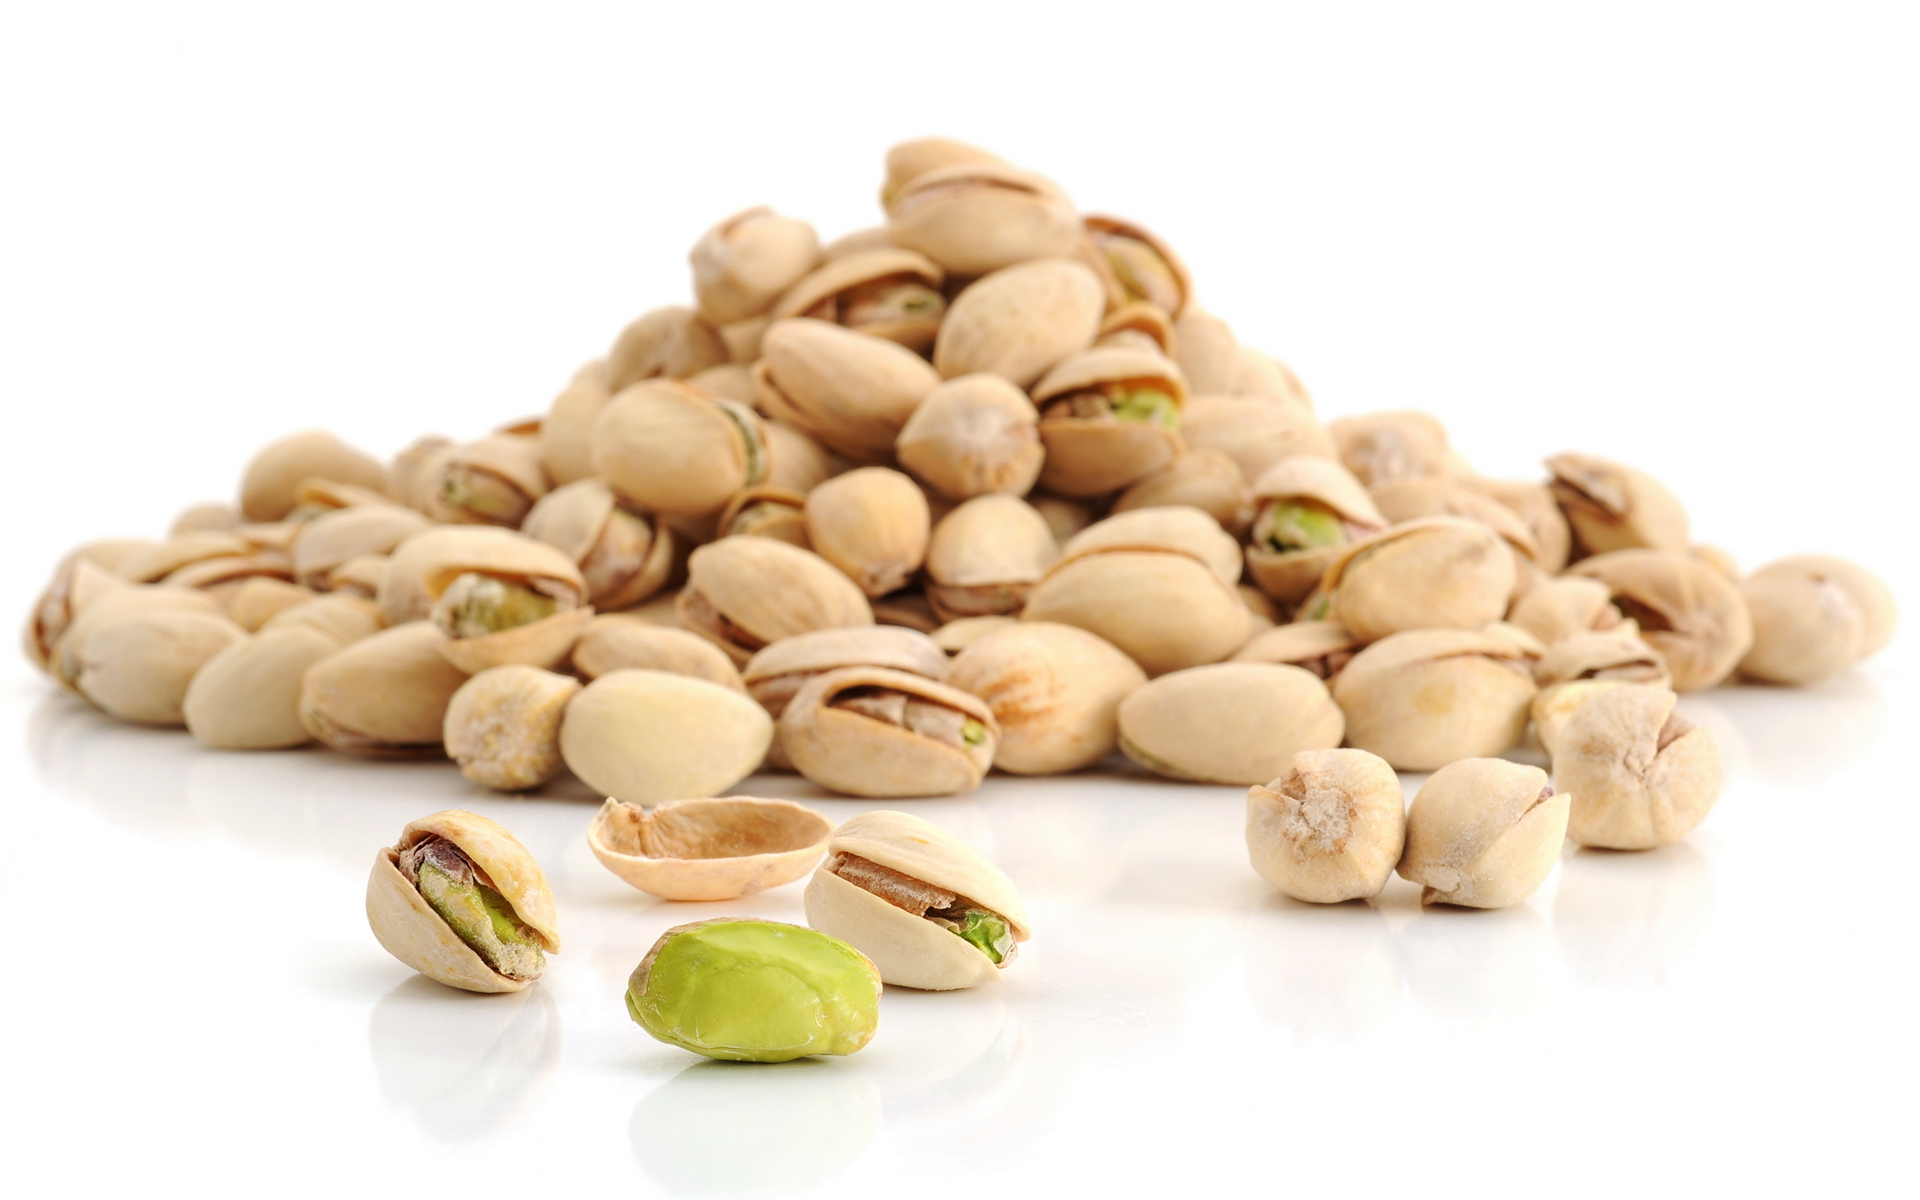 nuts-pistachio-nuts-tasty-many-white-background